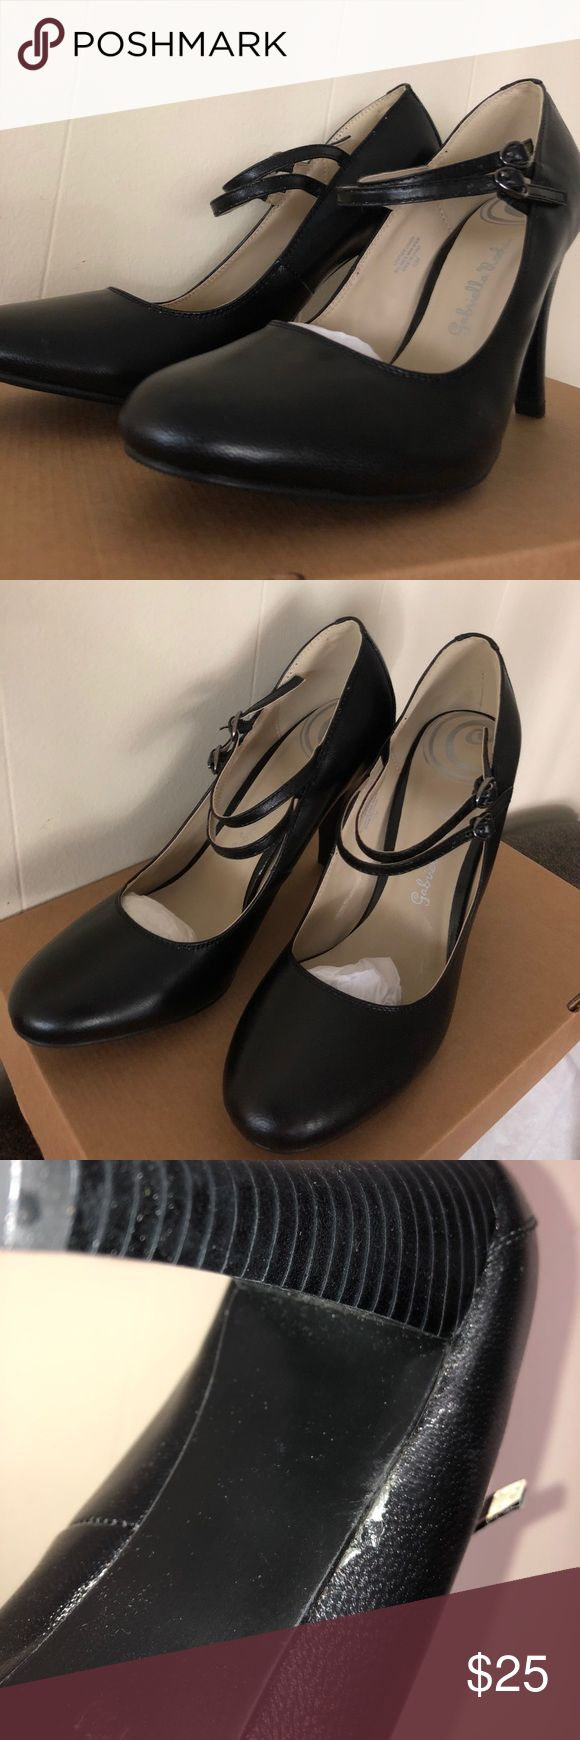 Gabriella Rocha Black Mary Jane Ankle Strap Heels Brand new, never worn black heels. You get exactly what's pictured. Gabriella Rocha Shoes Heels